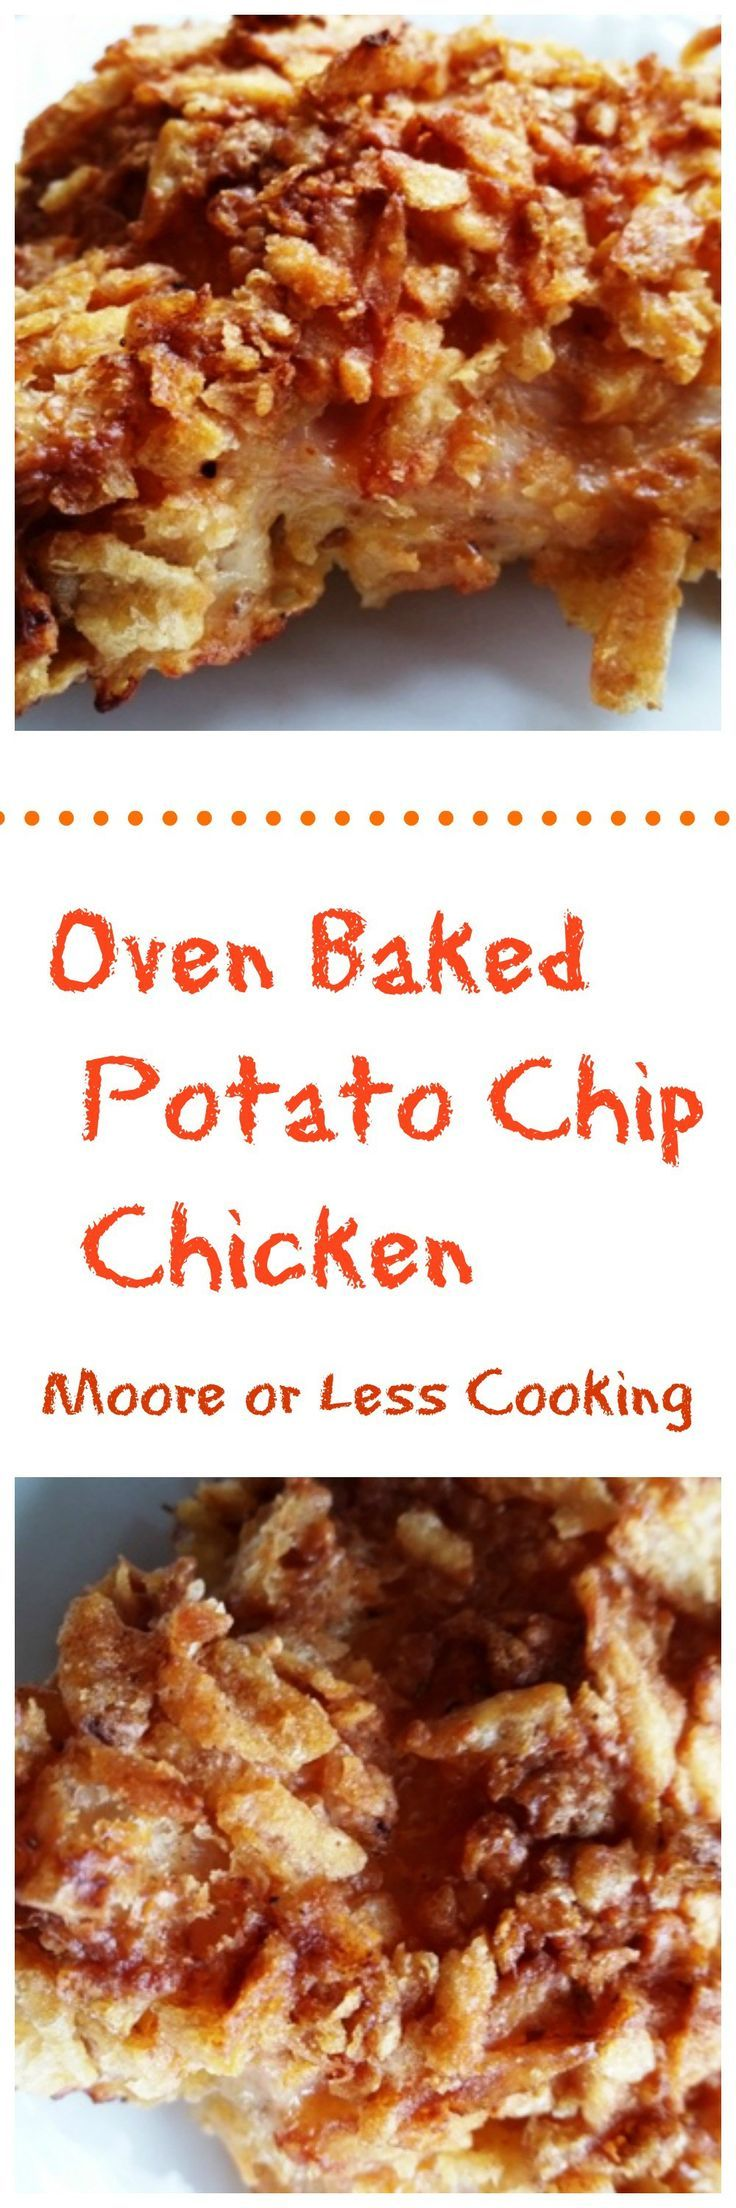 Oven Baked Potato Chip Chicken